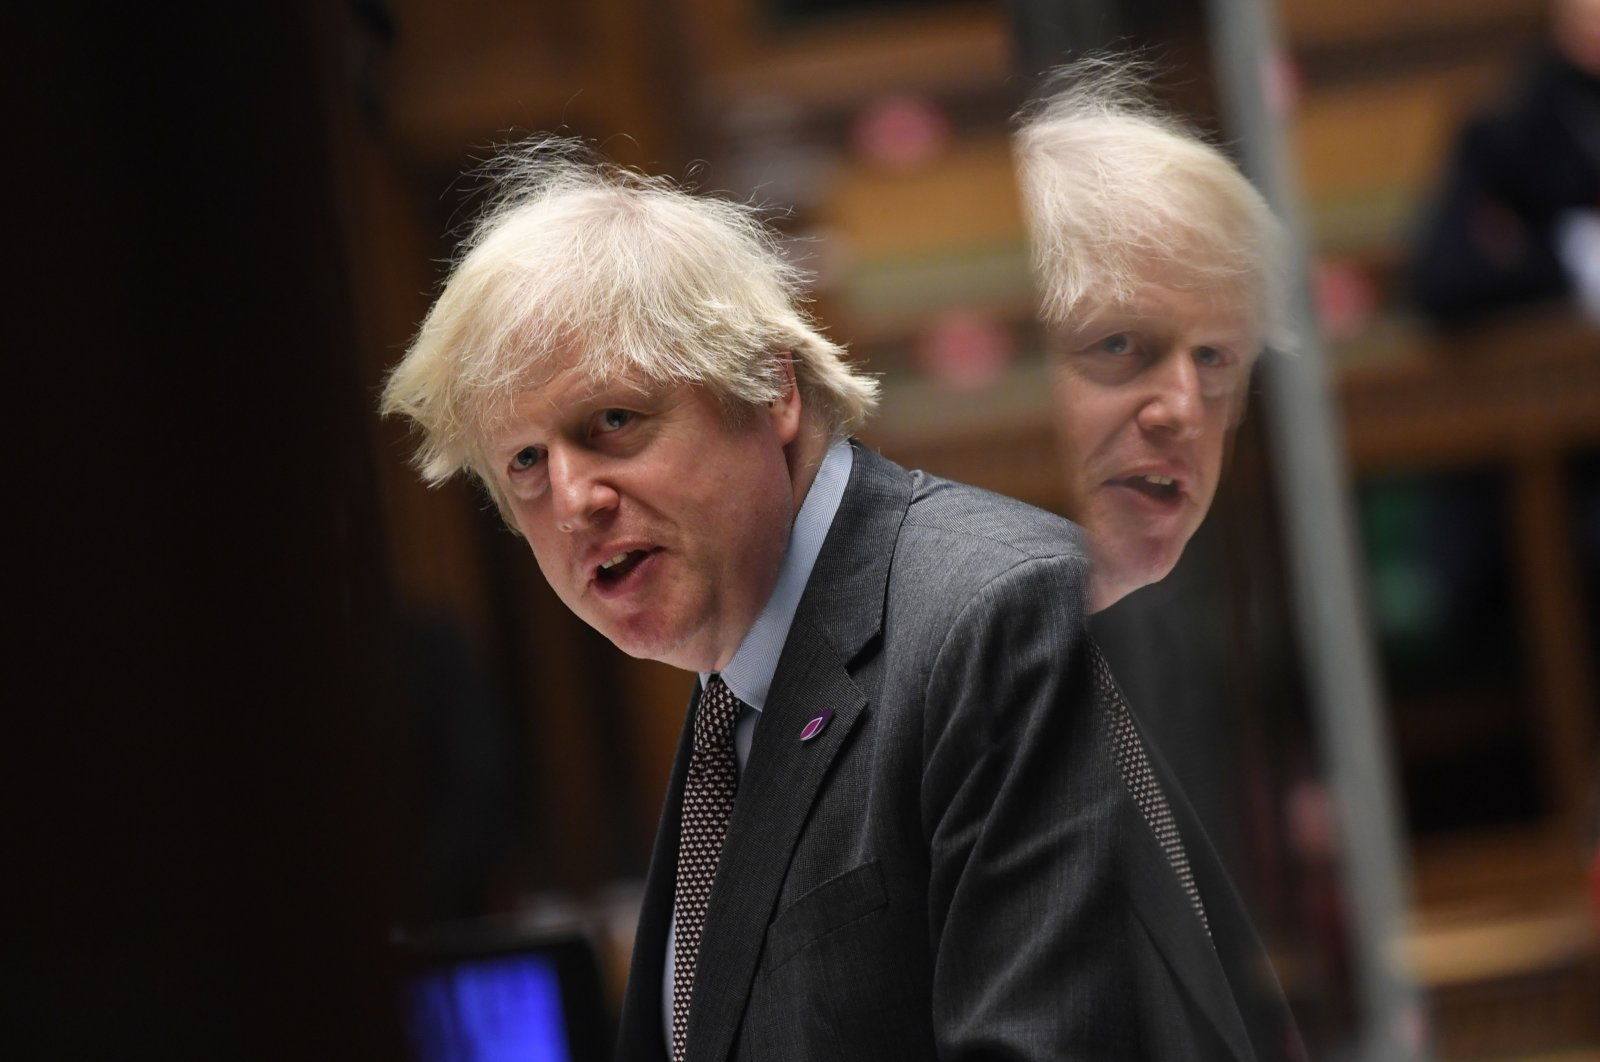 Britain's Prime Minister Boris Johnson takes part in the weekly Prime Minister's Questions, in a hybrid, socially distanced session at the House of Commons in London, U.K, Jan. 27, 2021. (Photo by Jessica Taylor / U.K. Parliament via AFP)